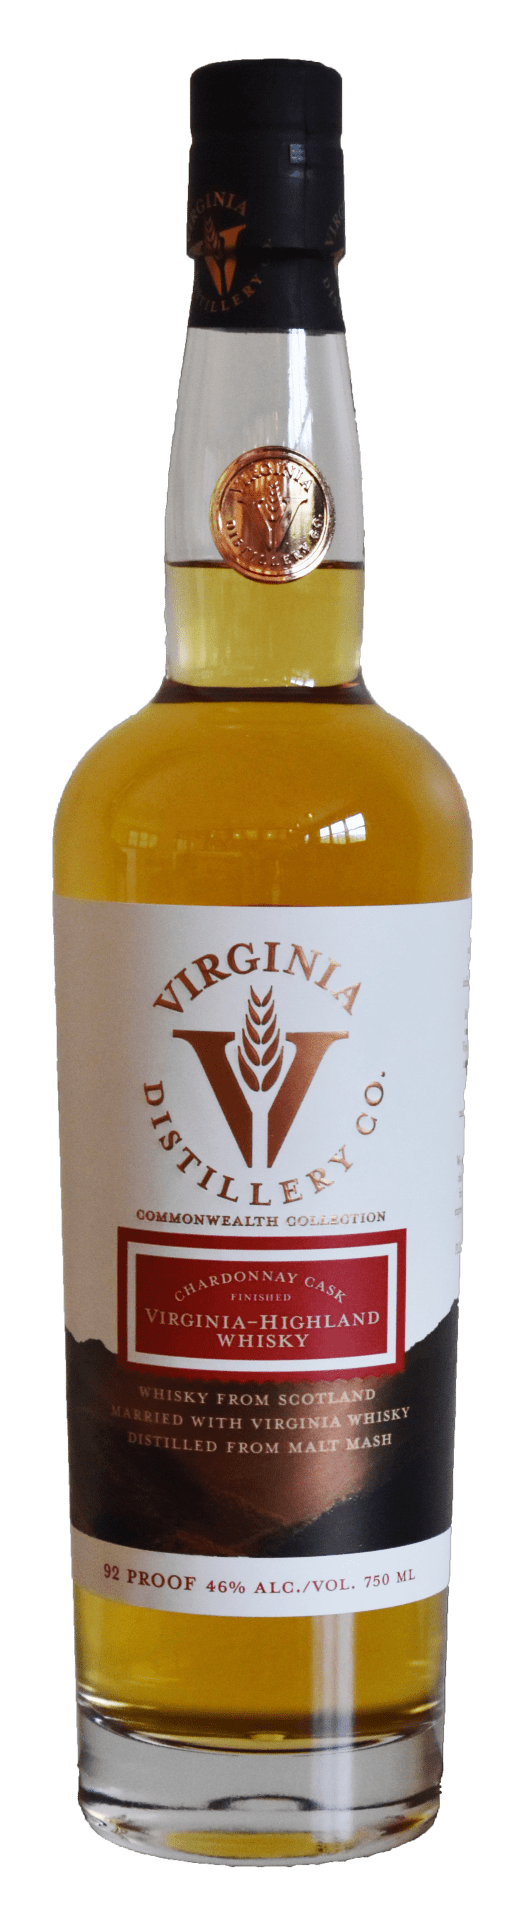 Virginia Distillery Chardonnay Finished Virginia Highland Malt Whisky